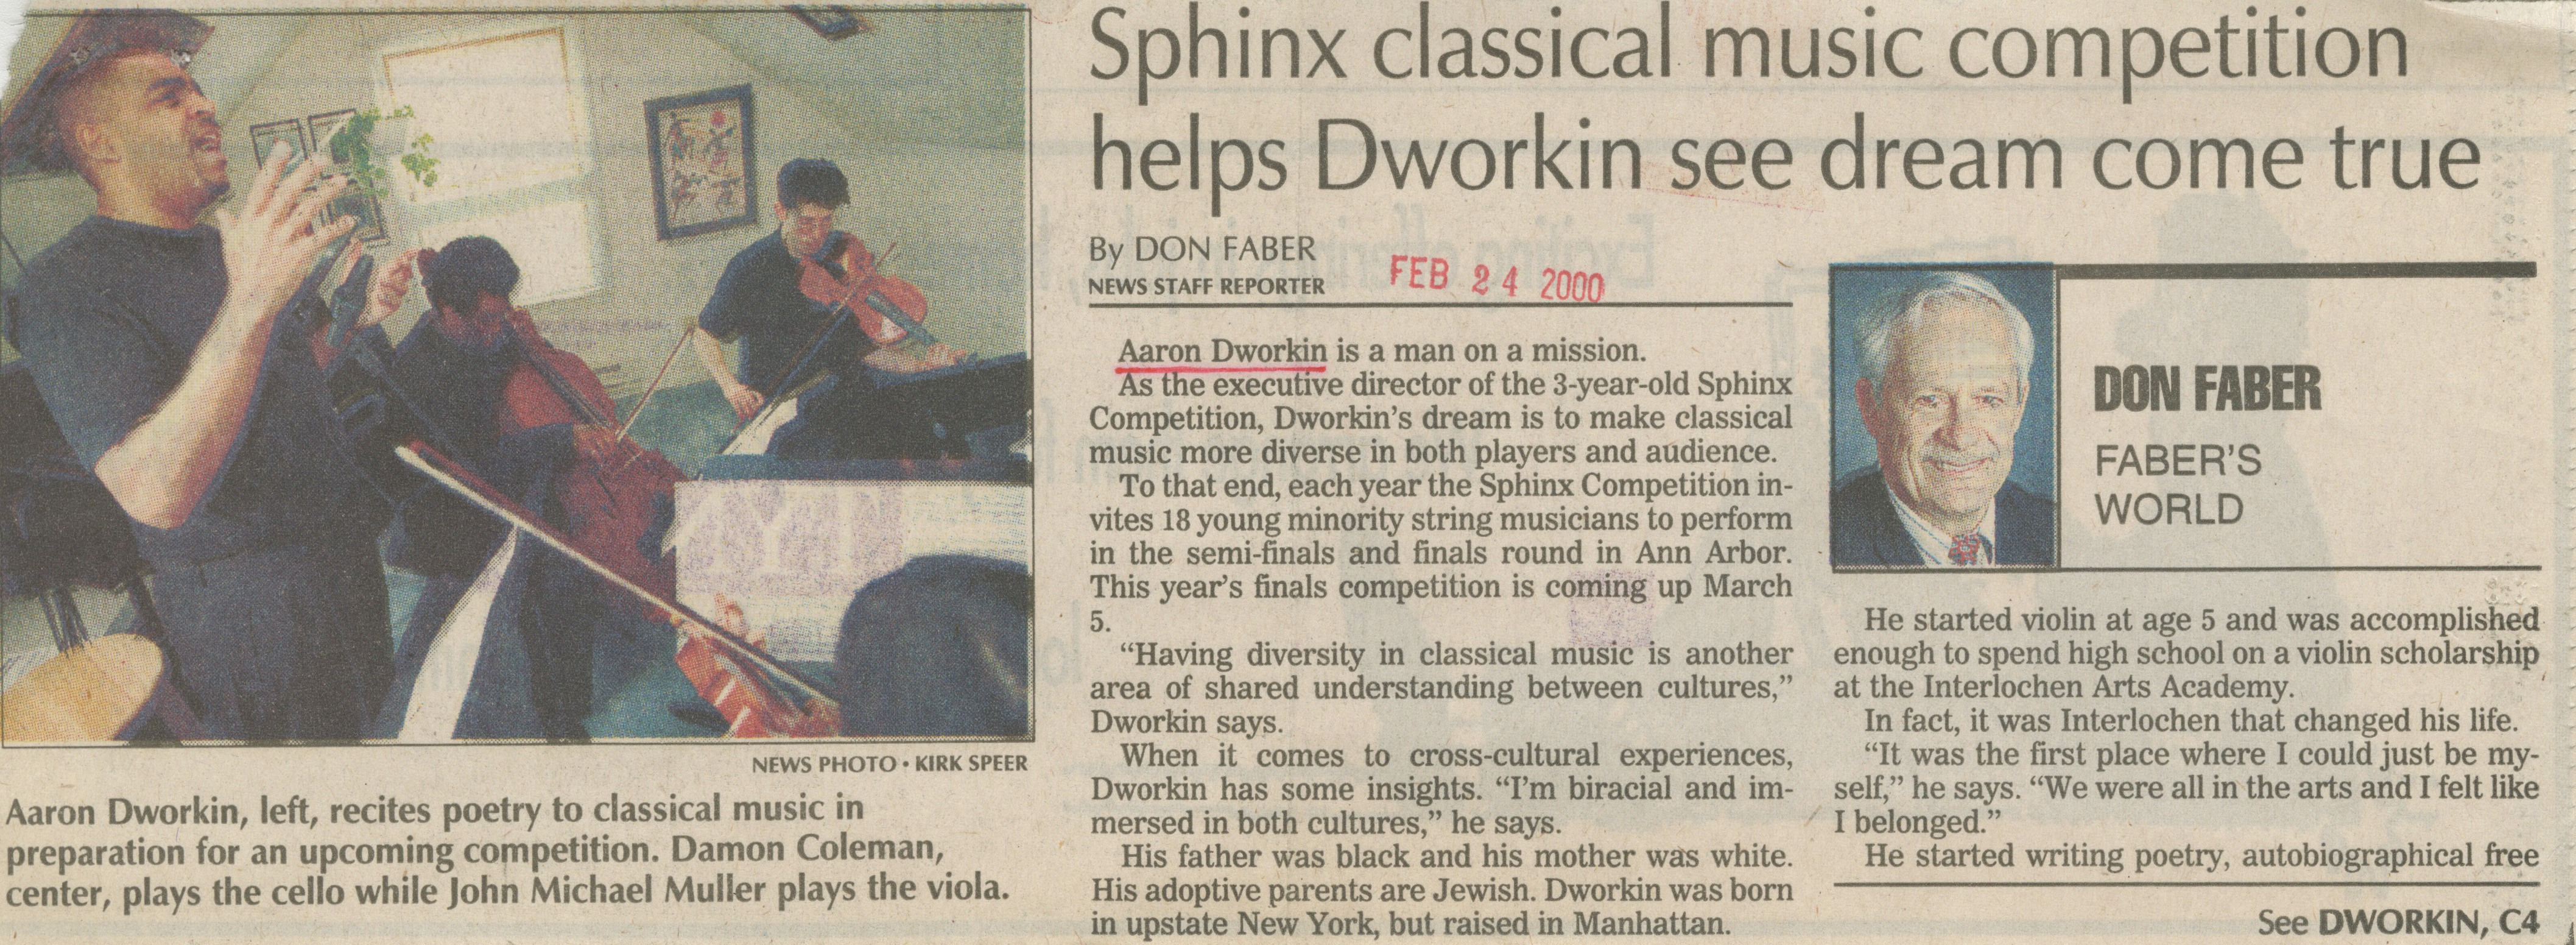 Sphinx classical music competition helps Dworkin see dream come true image